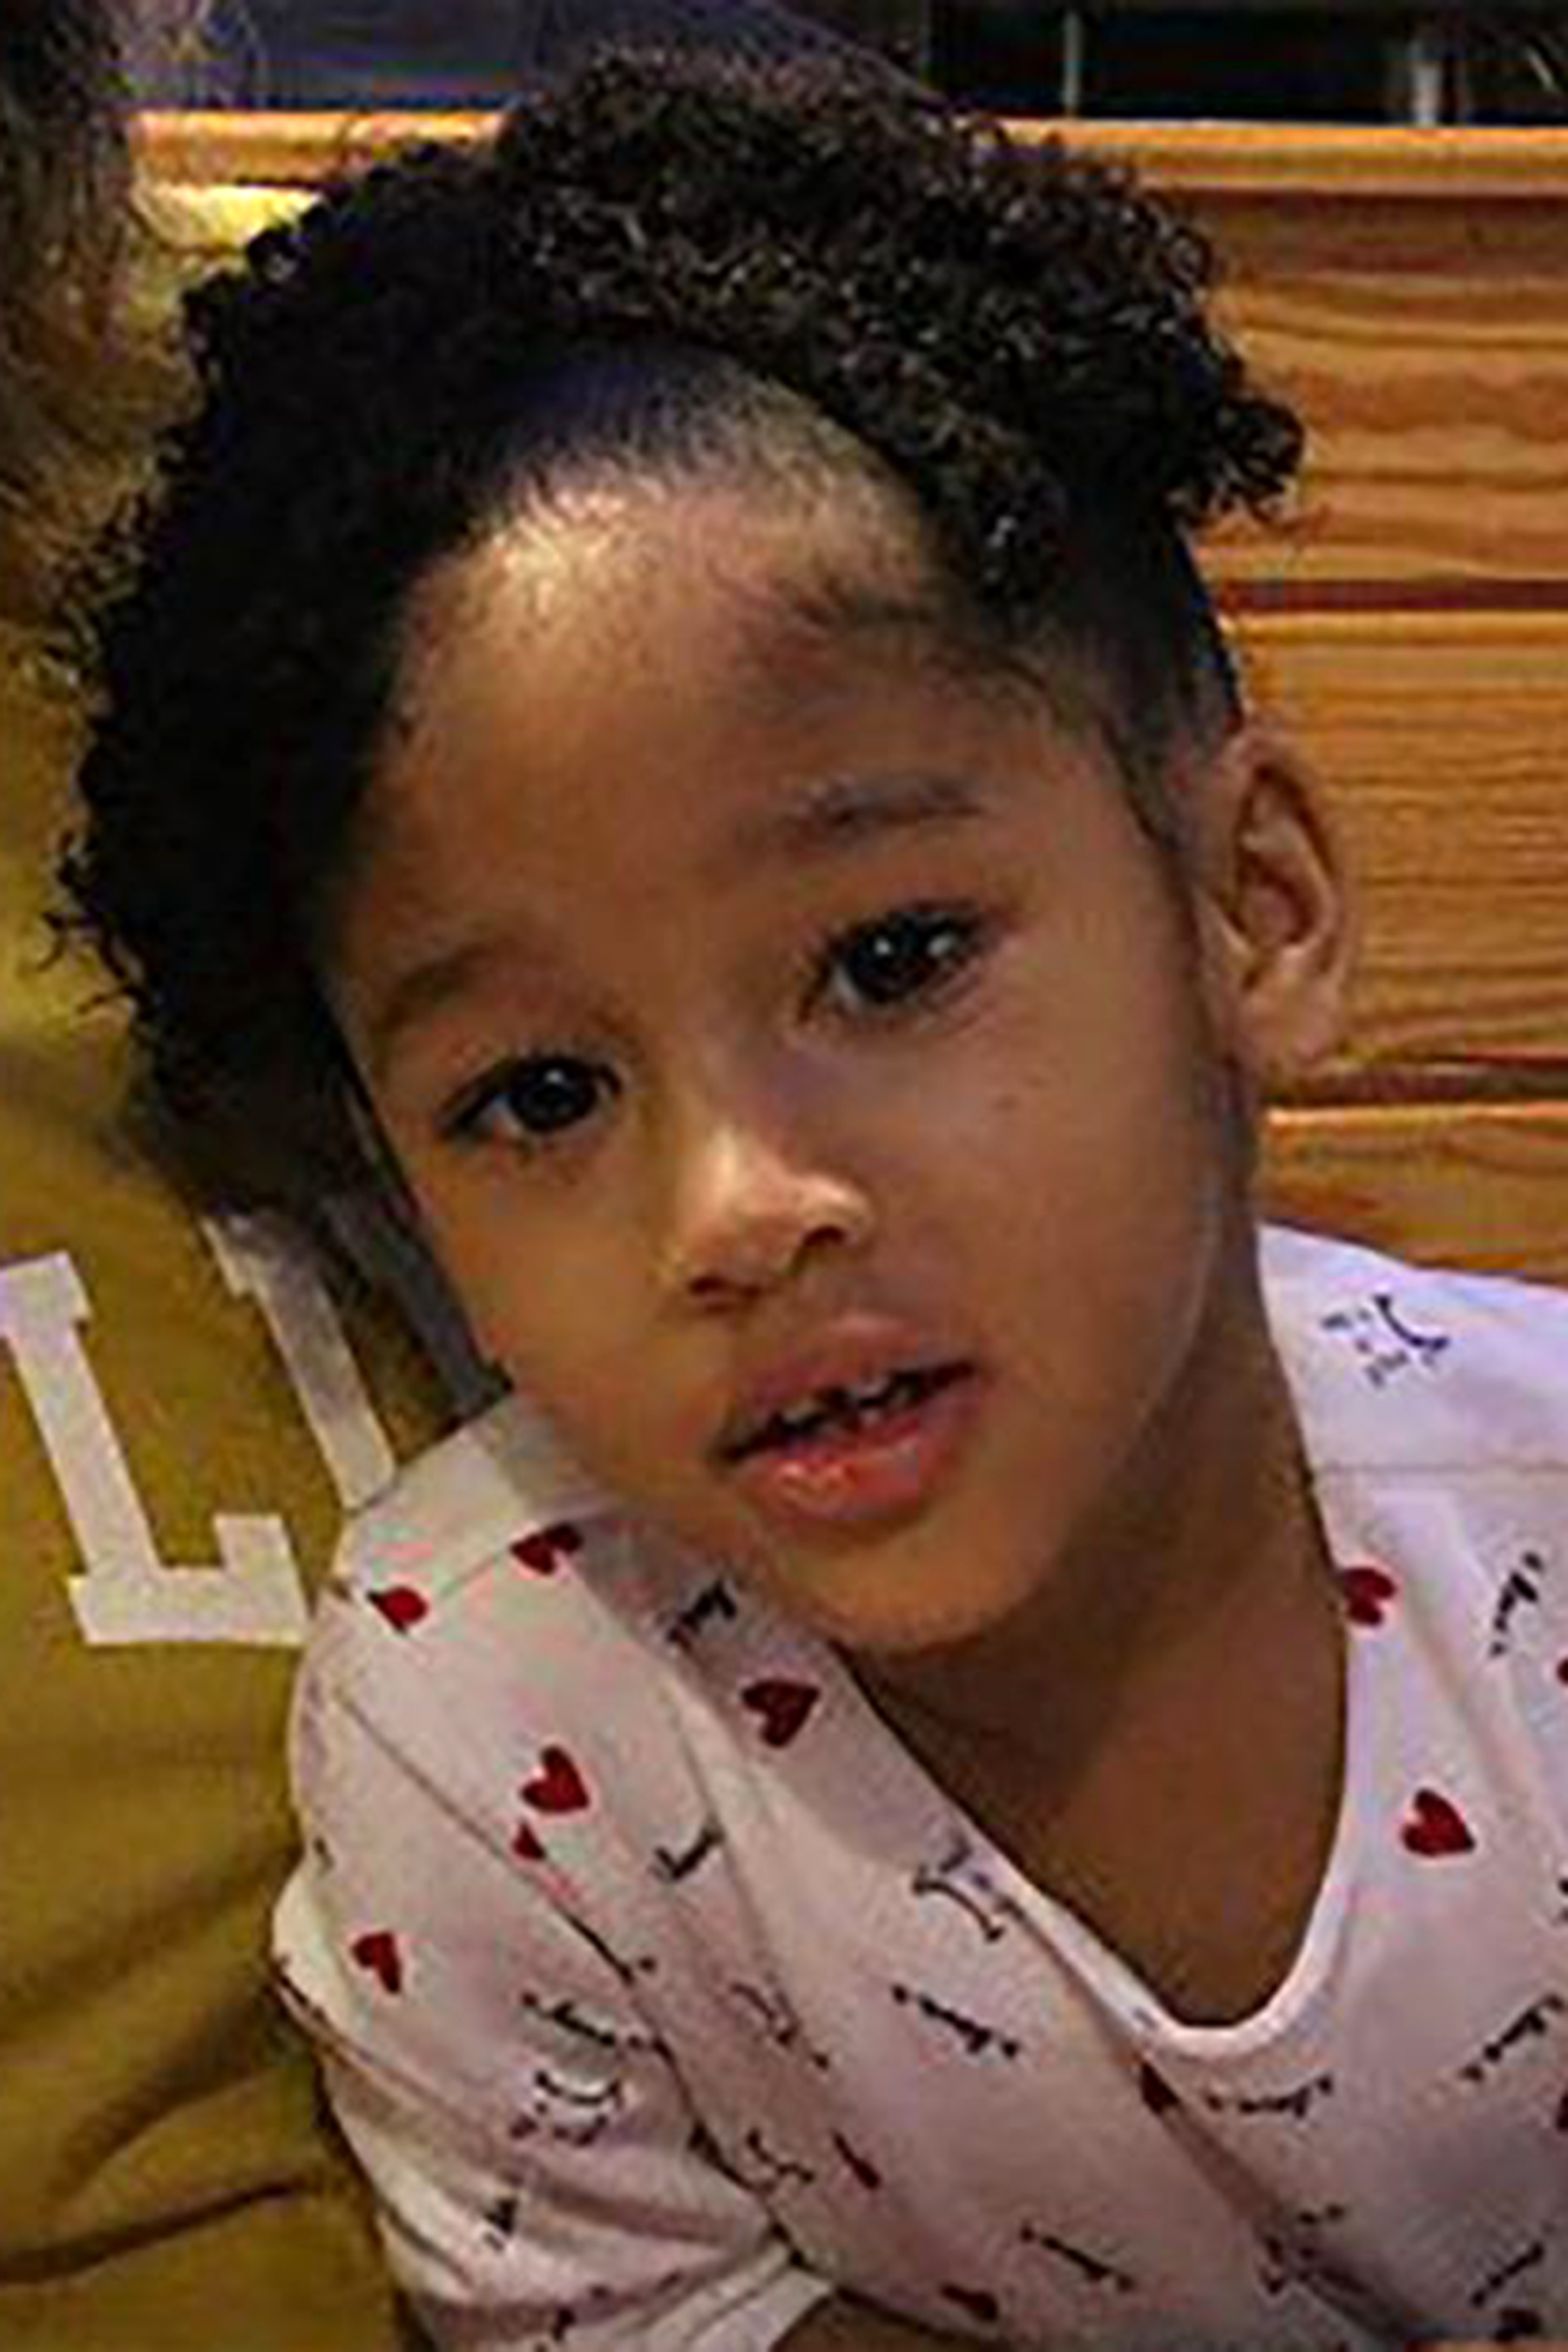 Body of Missing Texas Girl, 4, Found Inside Garbage Bag in Arkansas — and Stepdad Is Charged